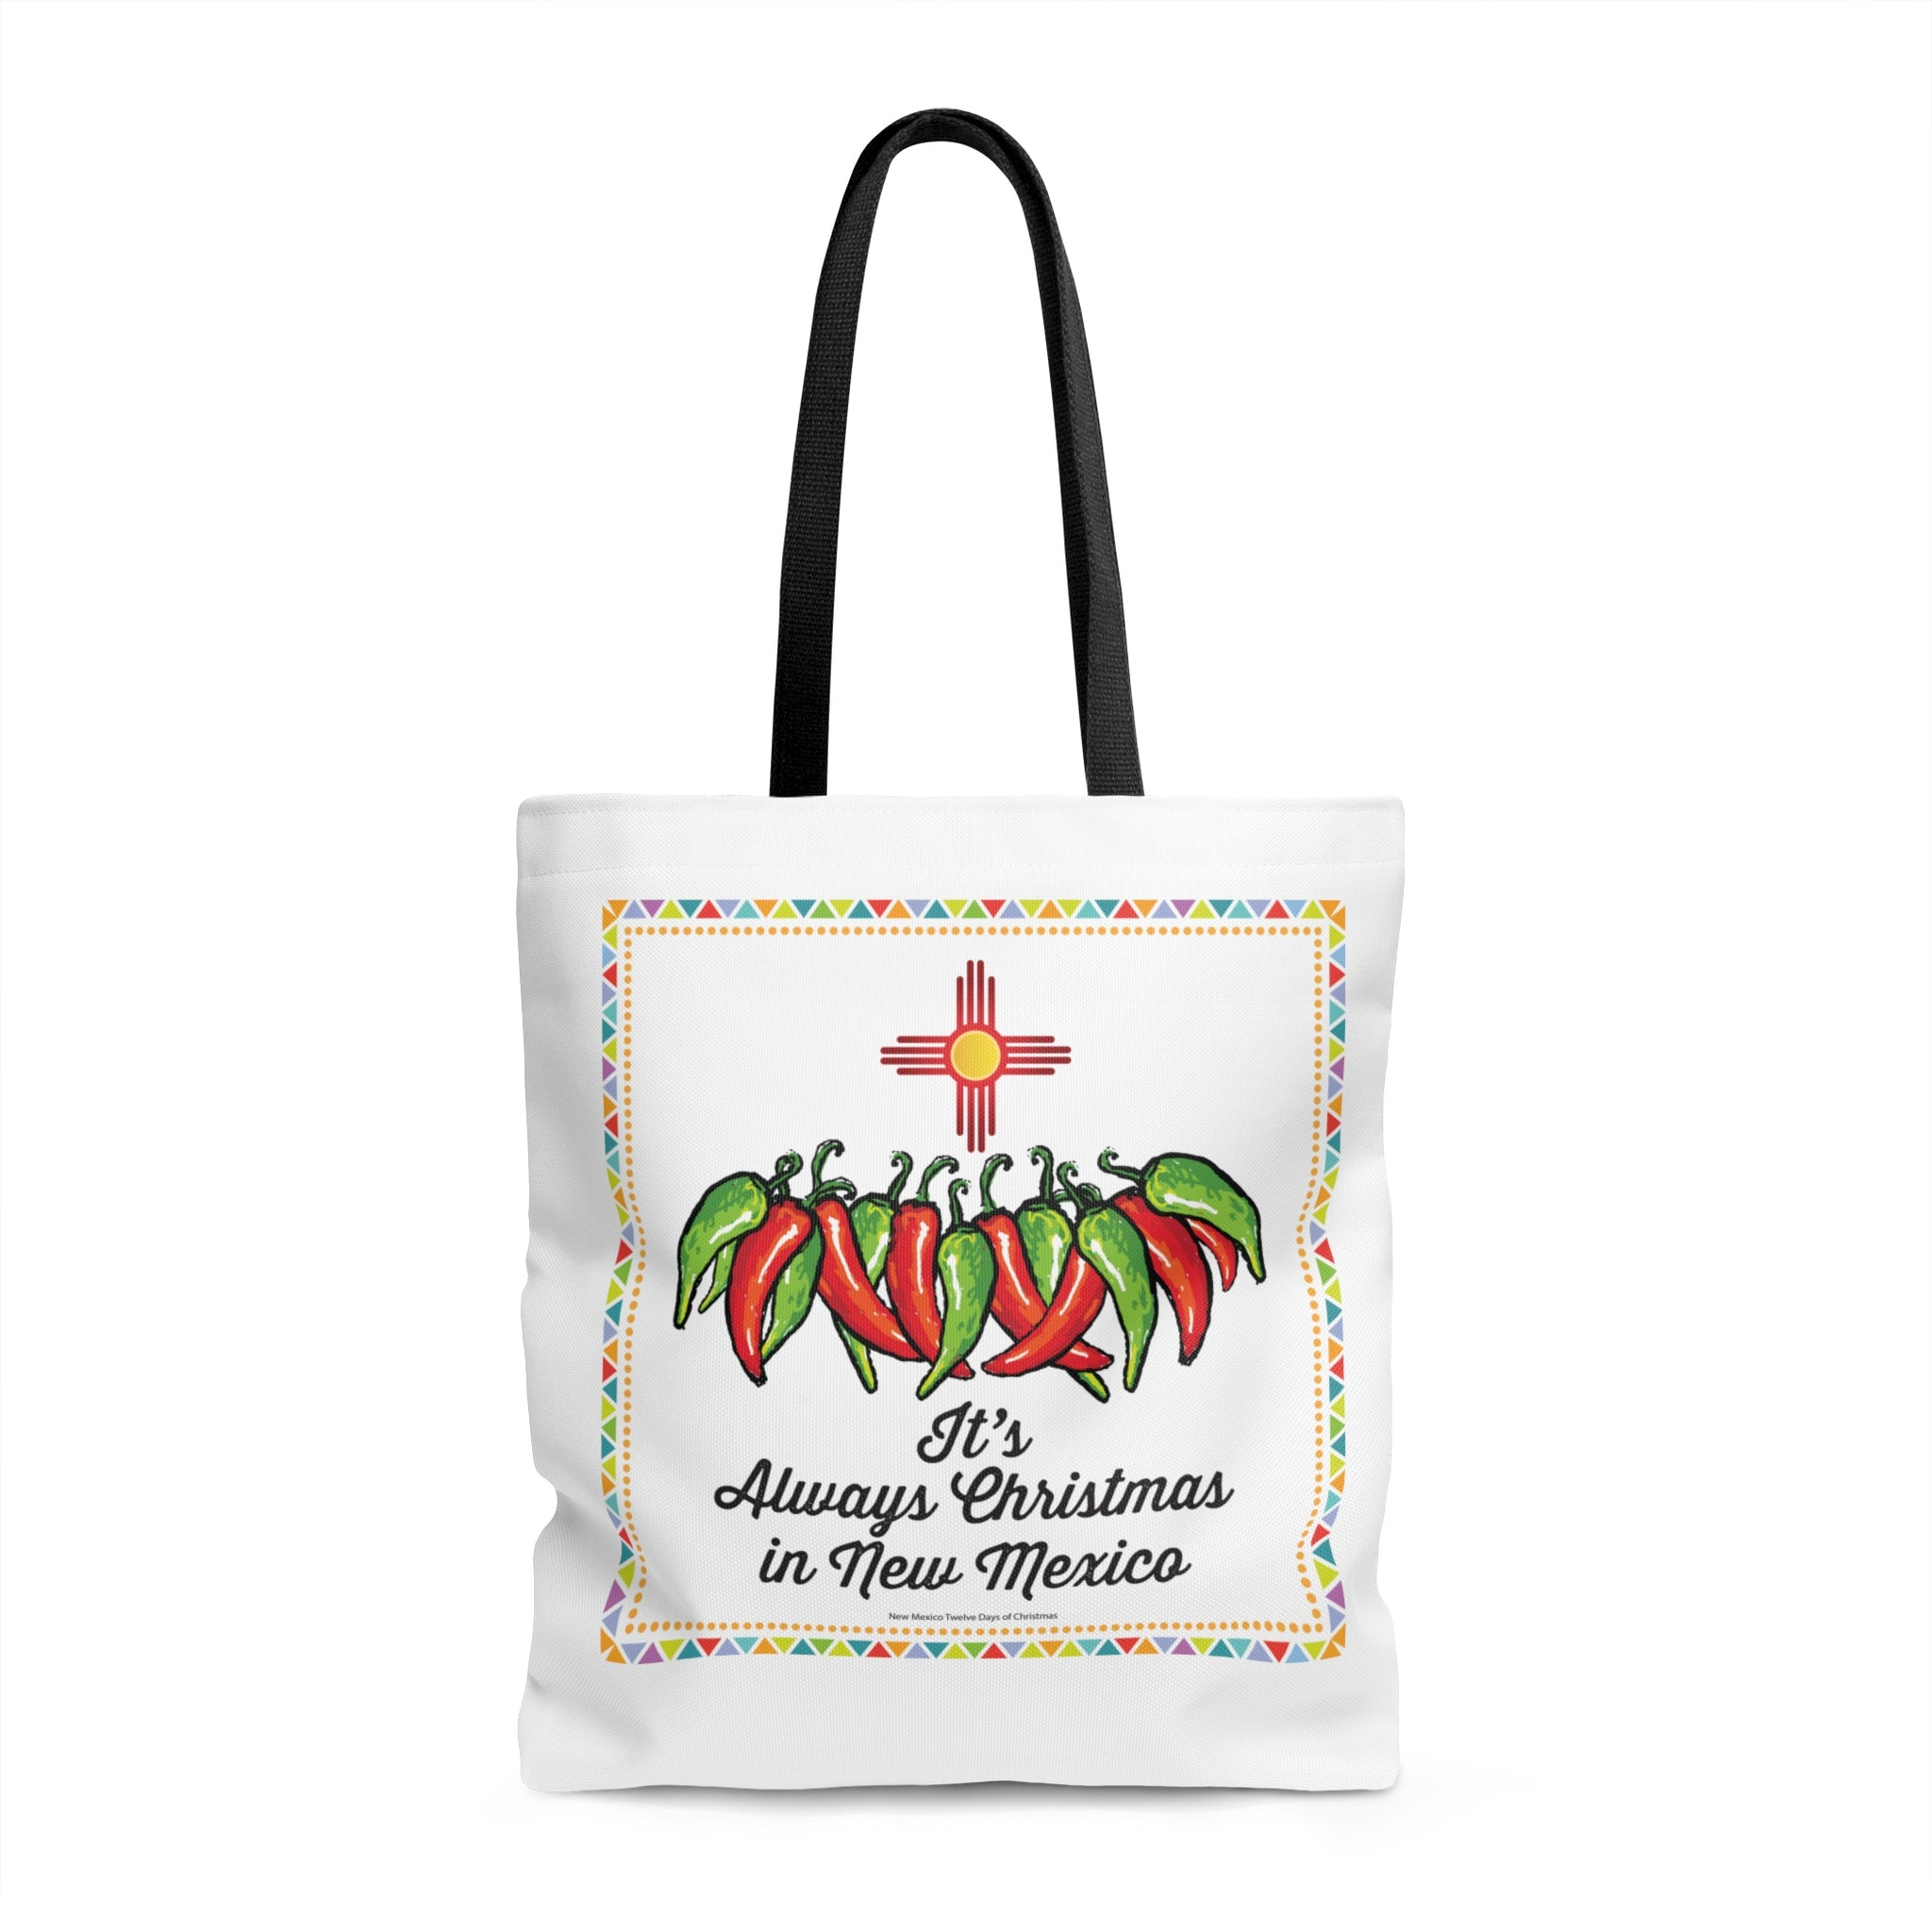 It's Always Christmas in New Mexico! (Tote Bag)